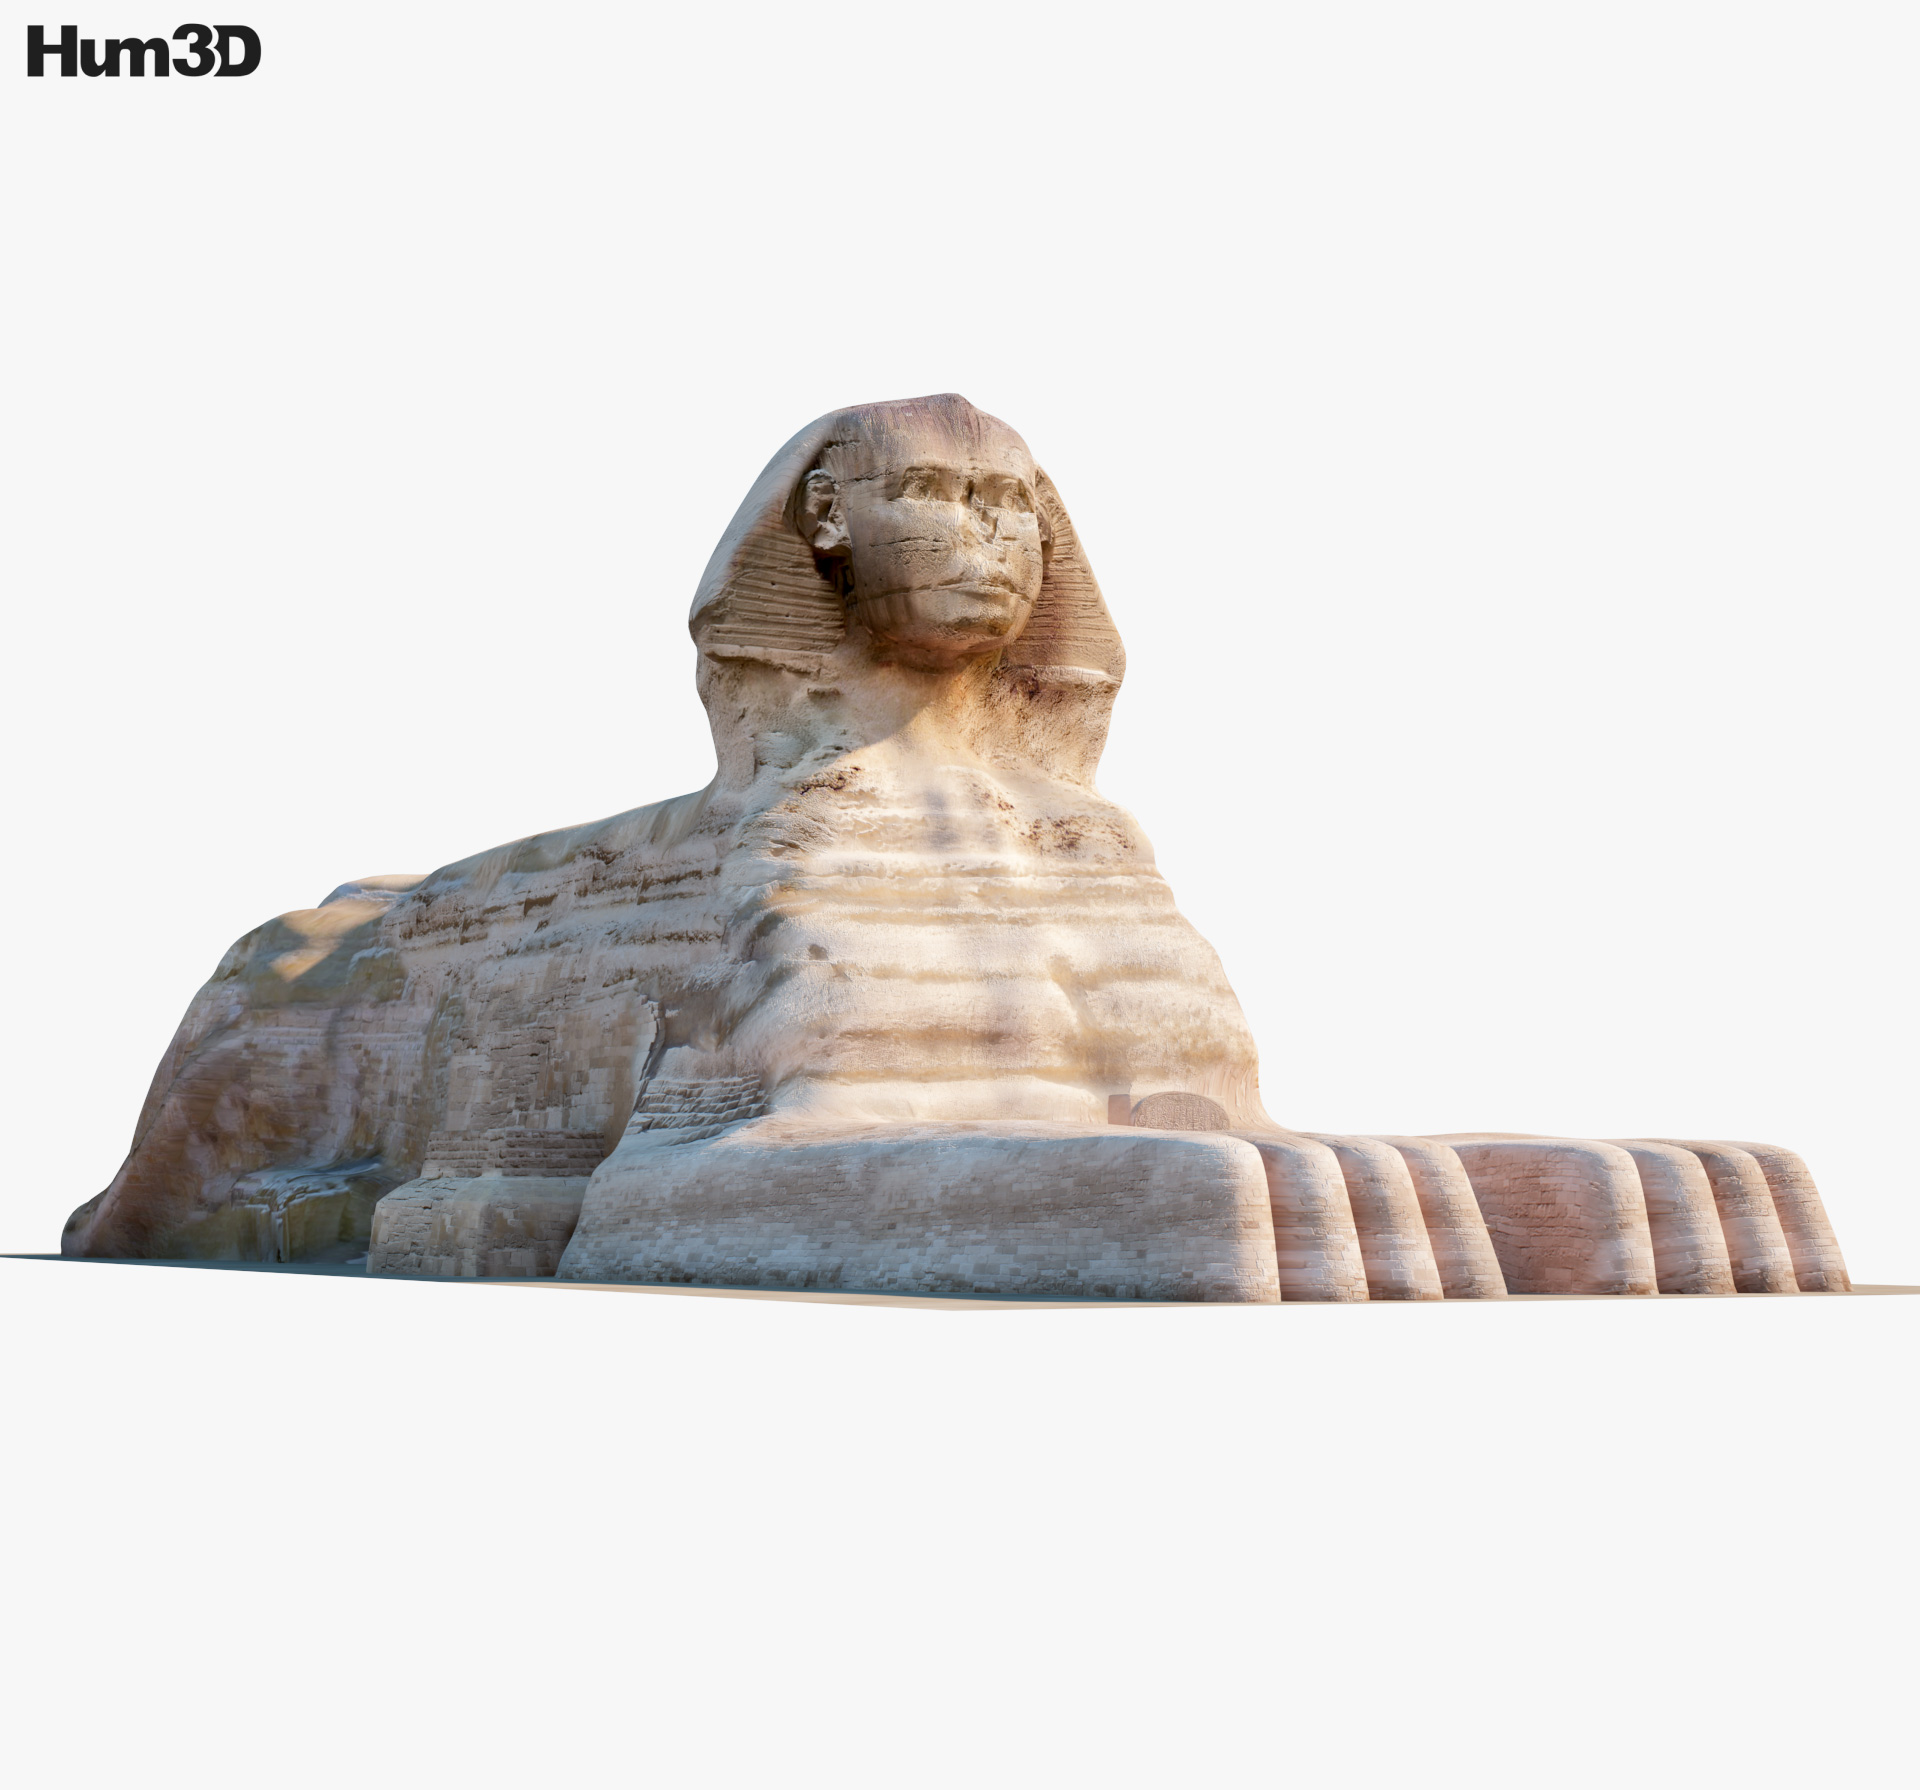 3D model of Great Sphinx of Giza